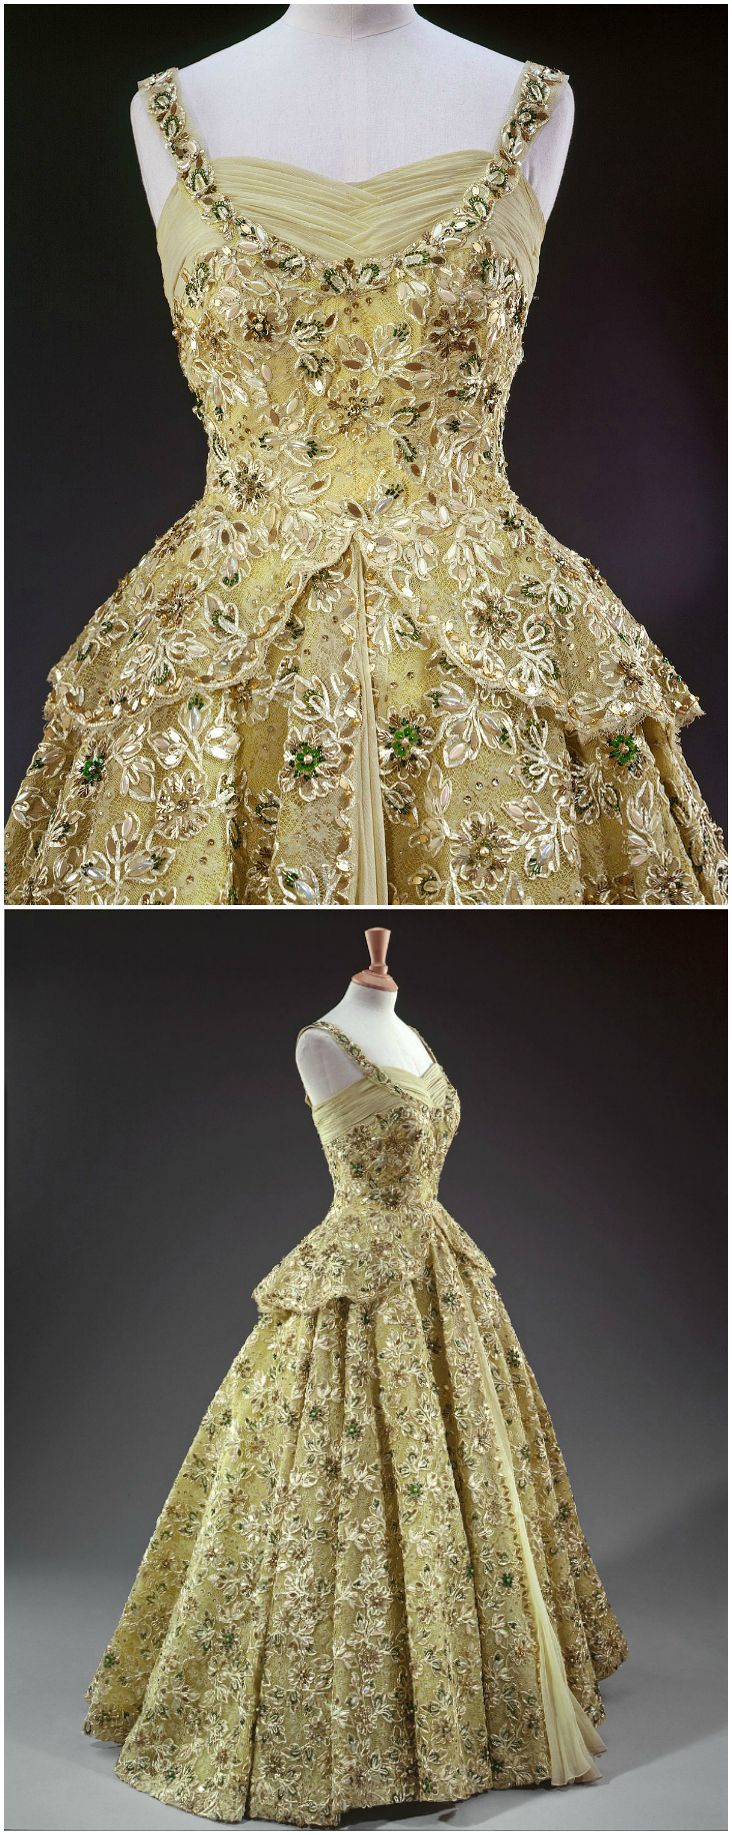 Evening Dress Designed By Norman Hartnell For Queen Elizabeth Ii 1950s The Royal Collection C 2008 Her Majesty Queen E Fashion Vintage Outfits Vintage Gowns [ 1835 x 732 Pixel ]